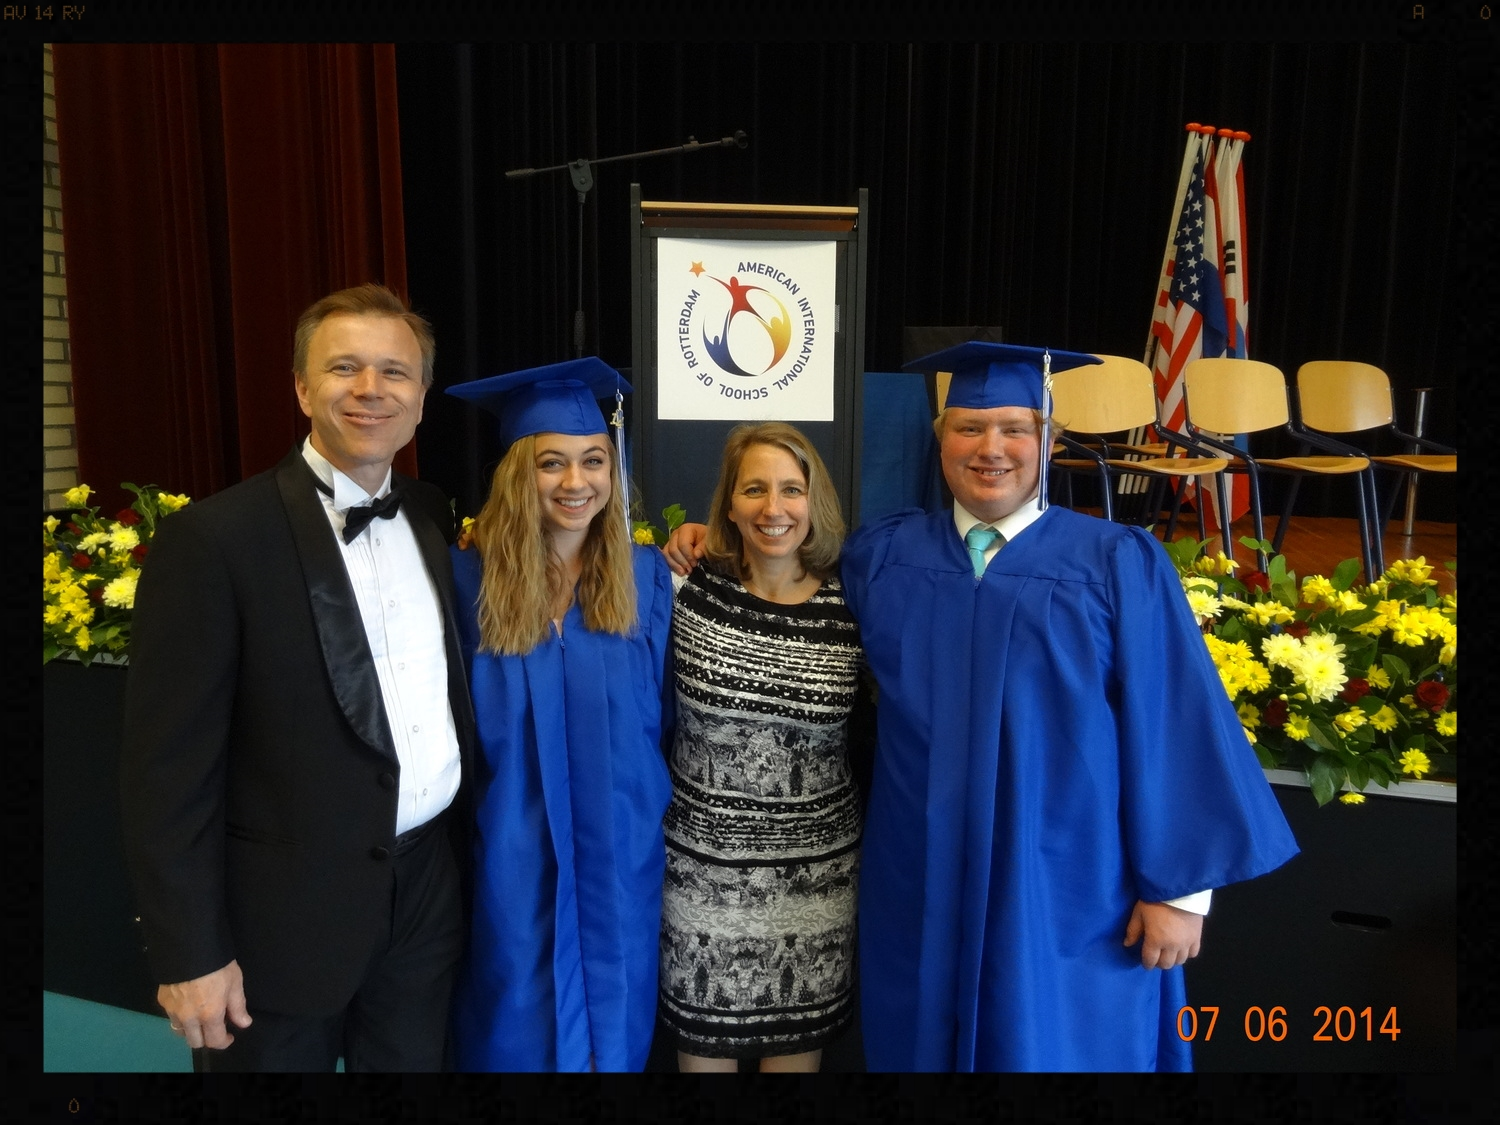 My husband and I with our graduated seniors.